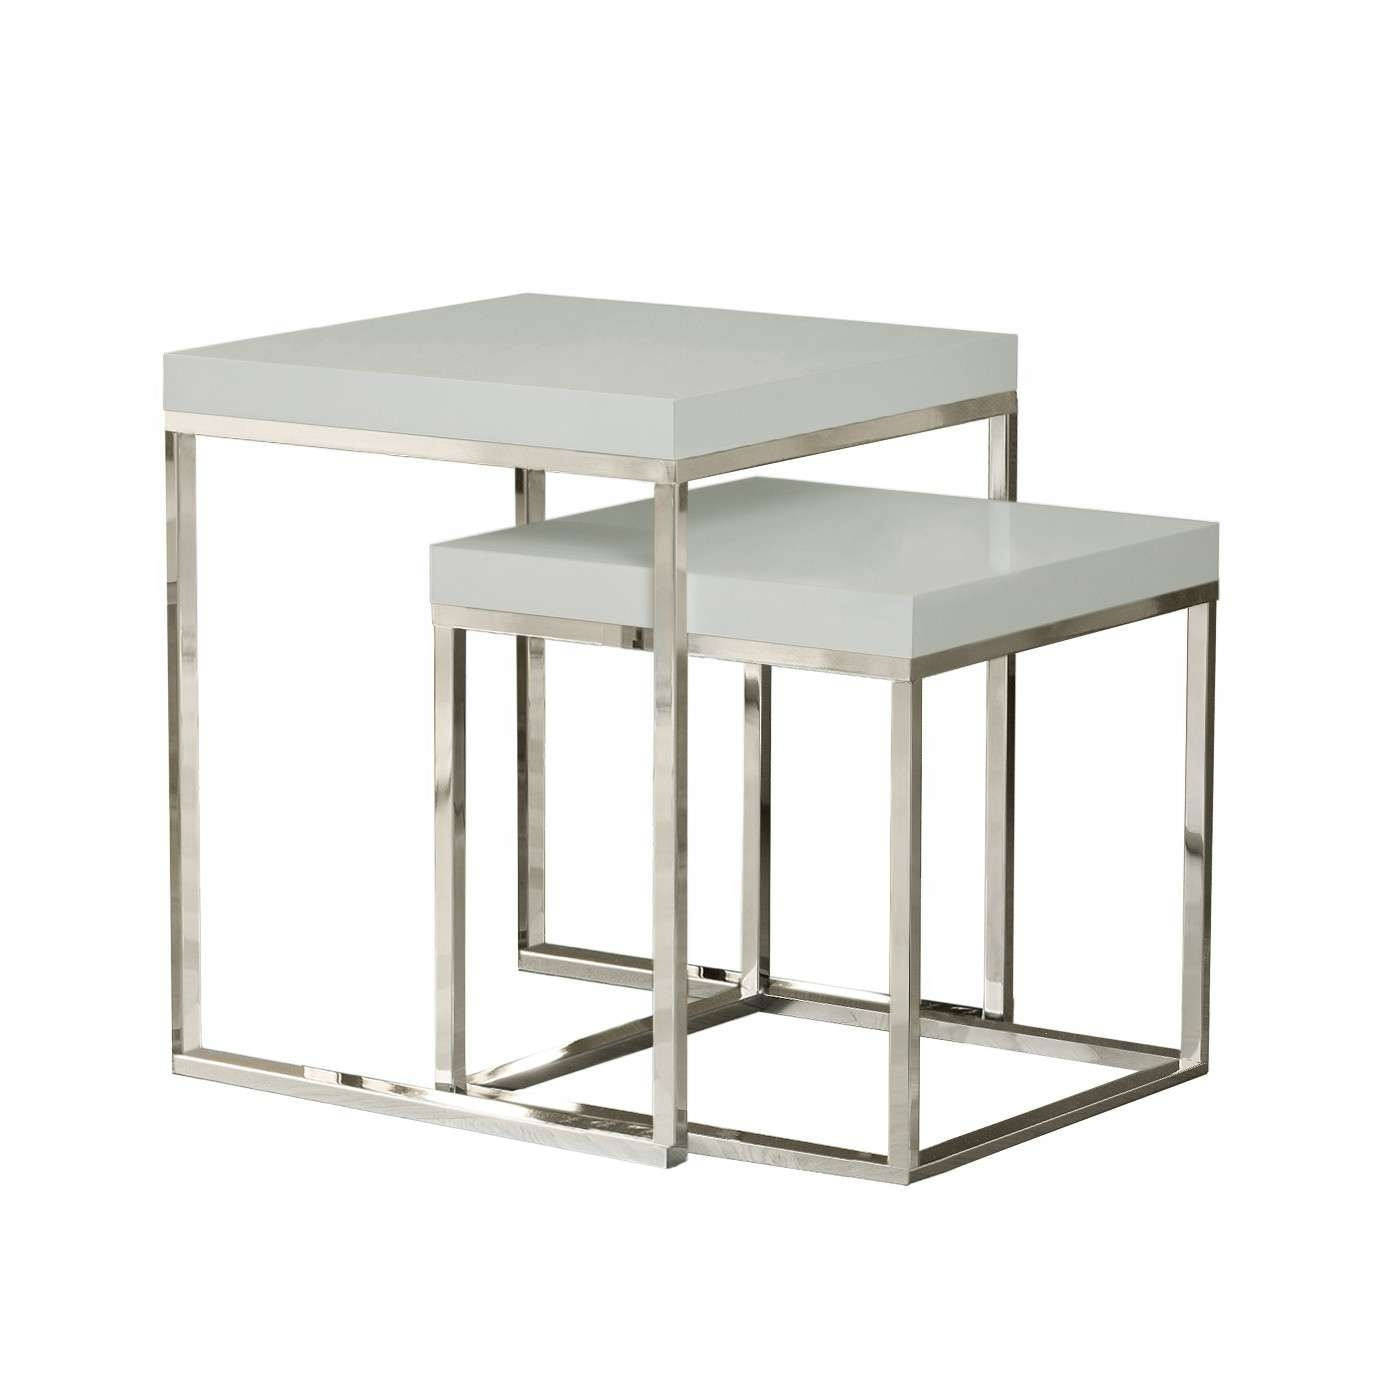 Prairie Nesting Tables High Gloss White Tops / Chrome Legs In Most Recent Chrome Leg Coffee Tables (View 12 of 20)